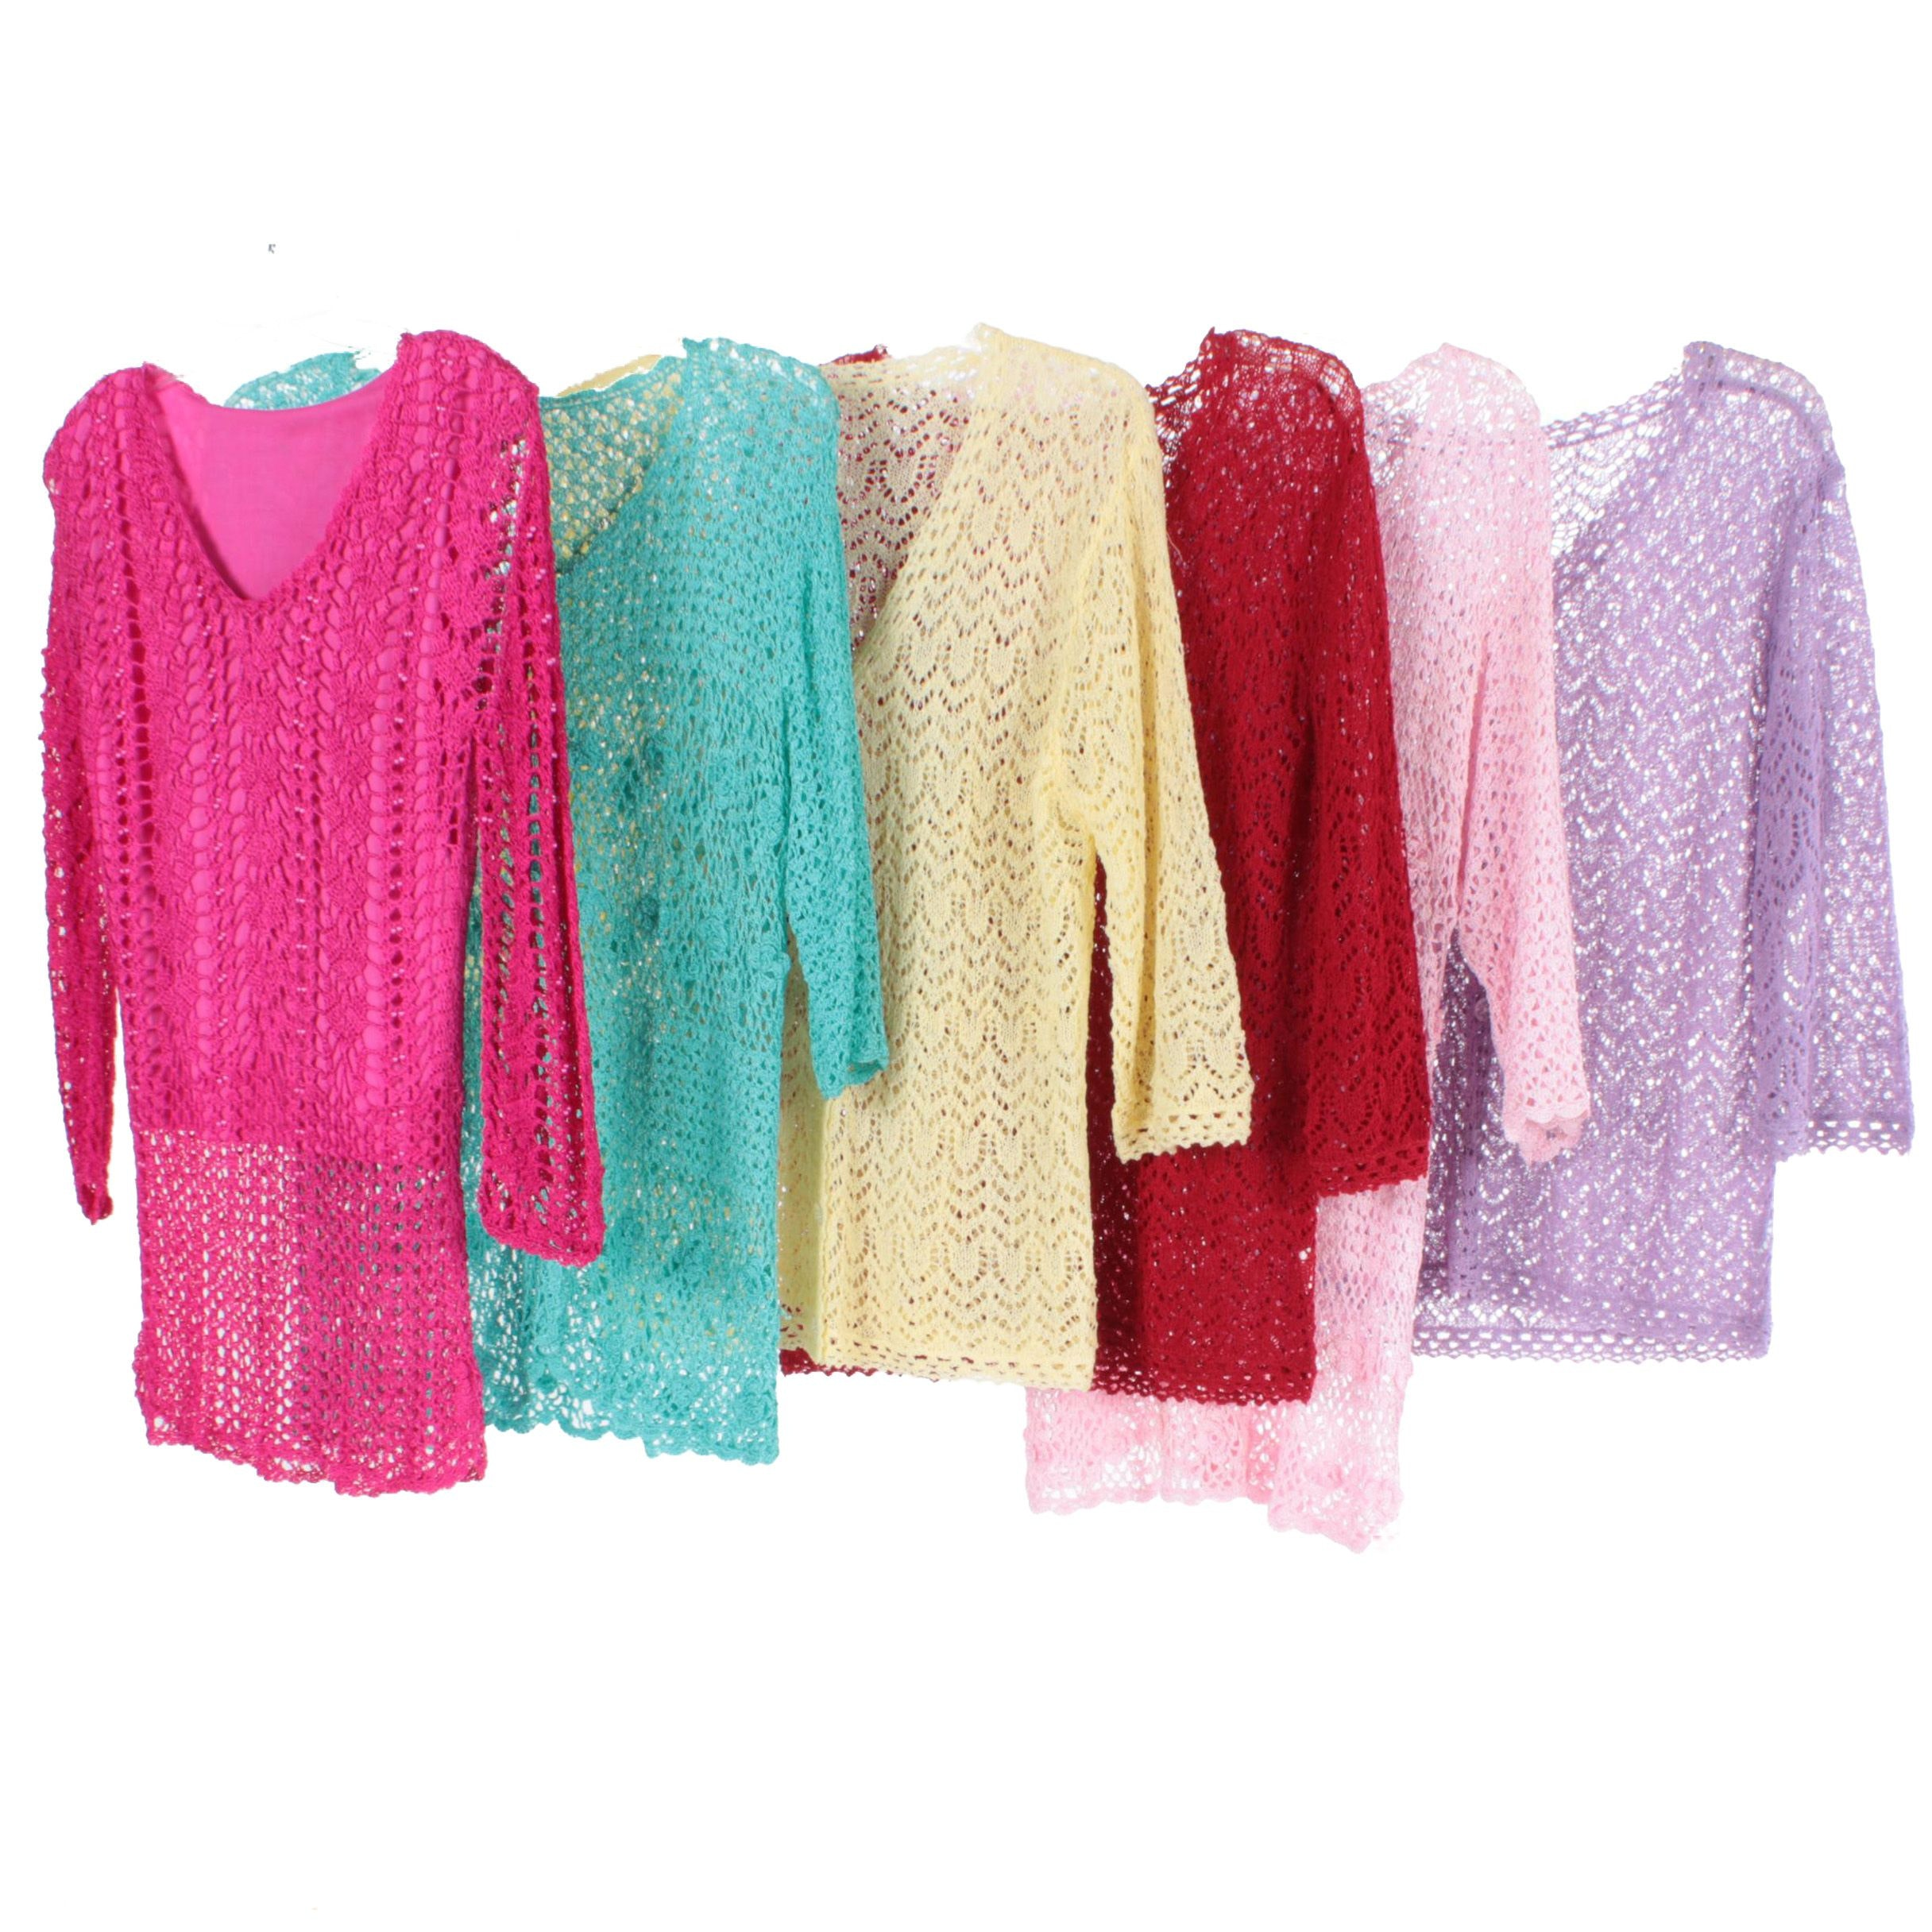 Colorful Pointelle Knit Sweaters and Cardigans